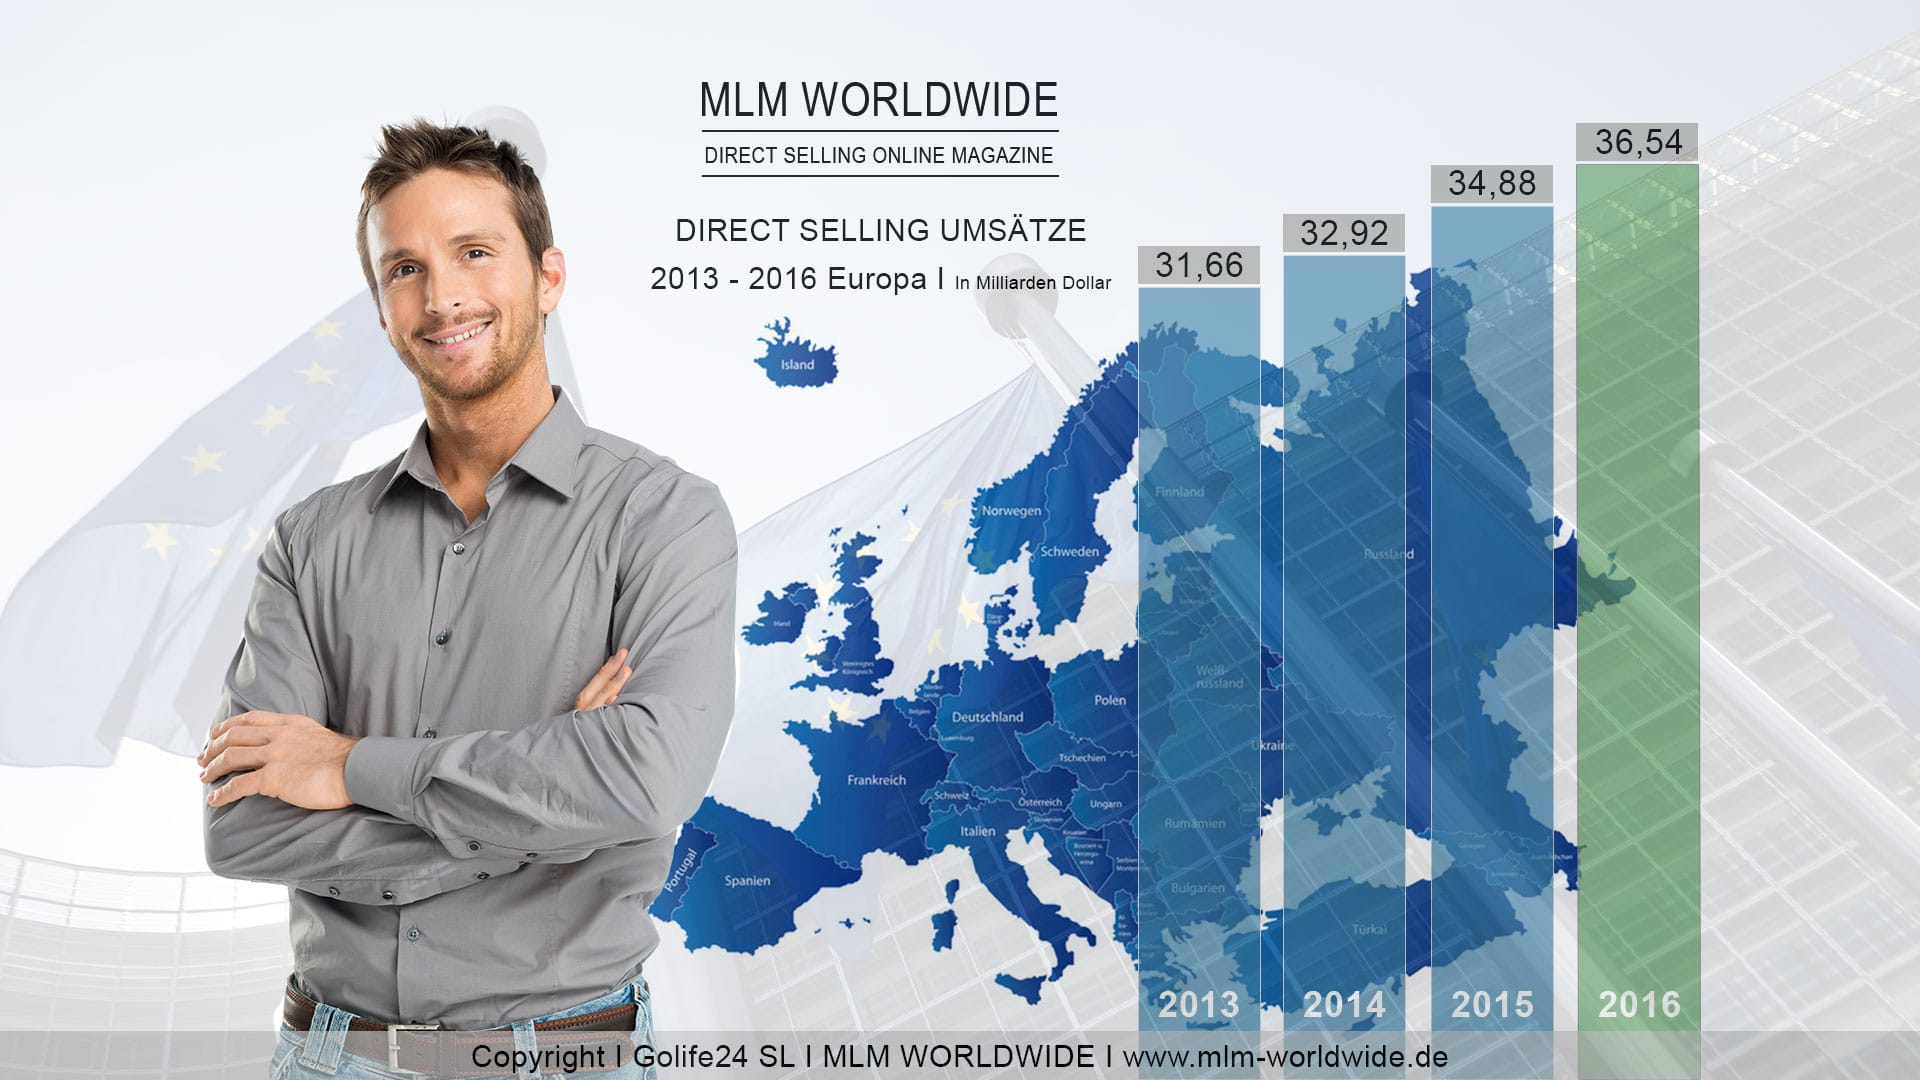 Direct-Selling-Umsatz-Europa-2013-bis-2016